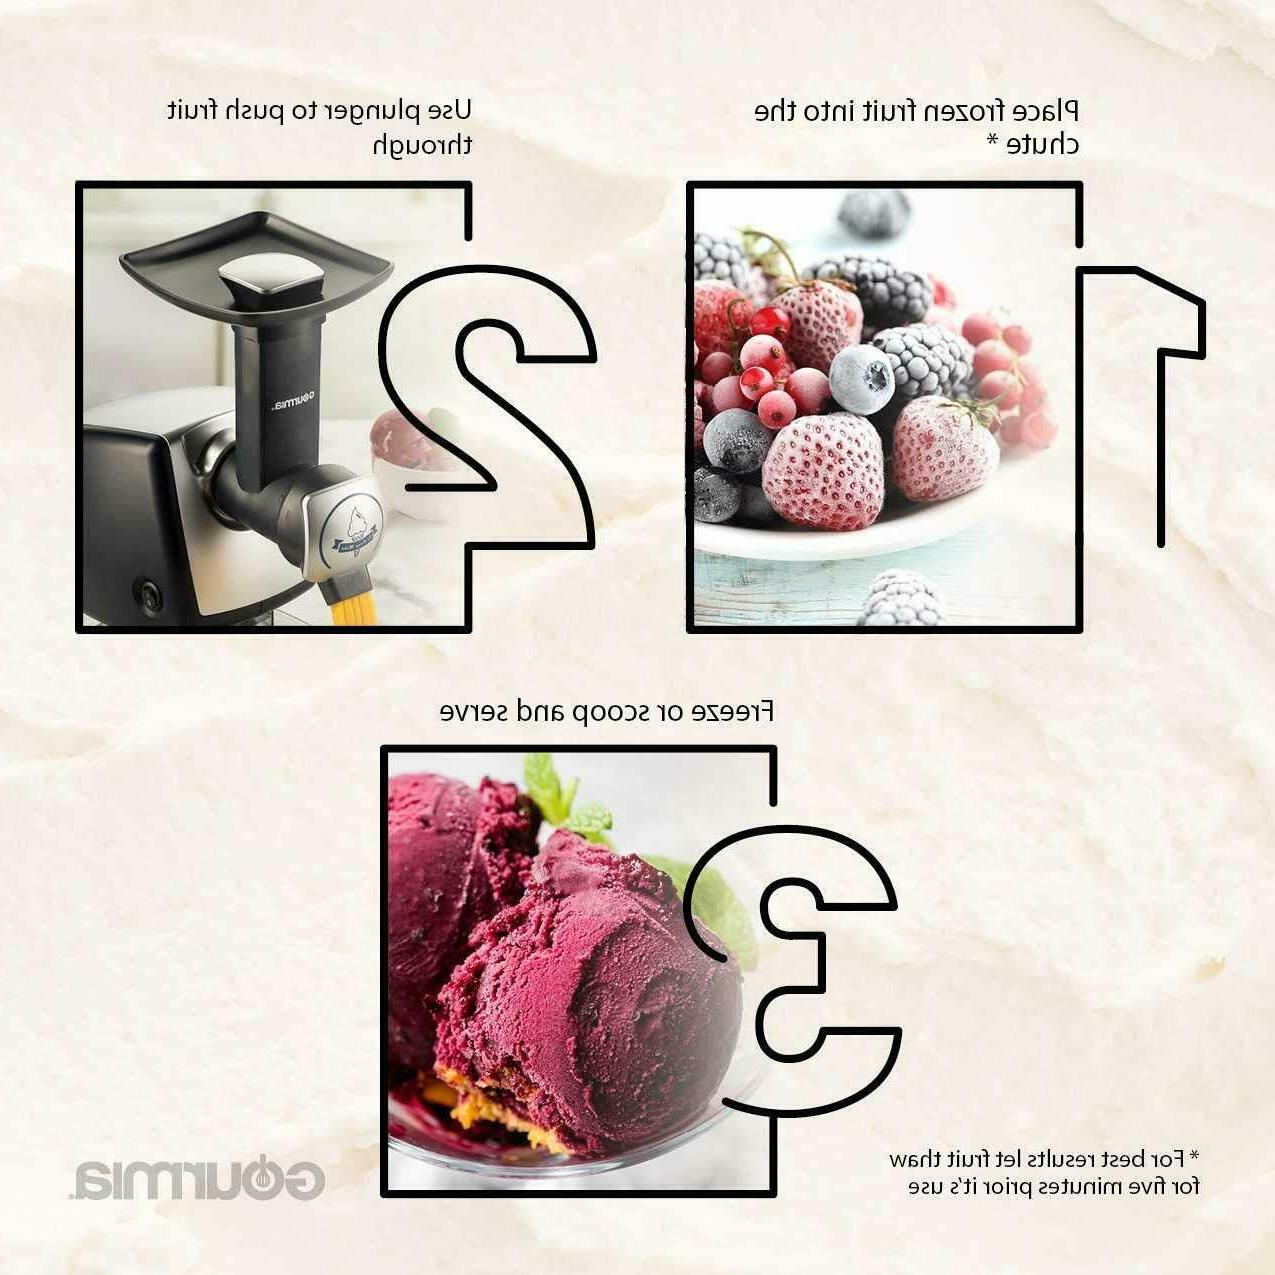 Automatic Healthy Frozen Dessert Maker, Makes Sorbet, Soft-Serve Sherbet